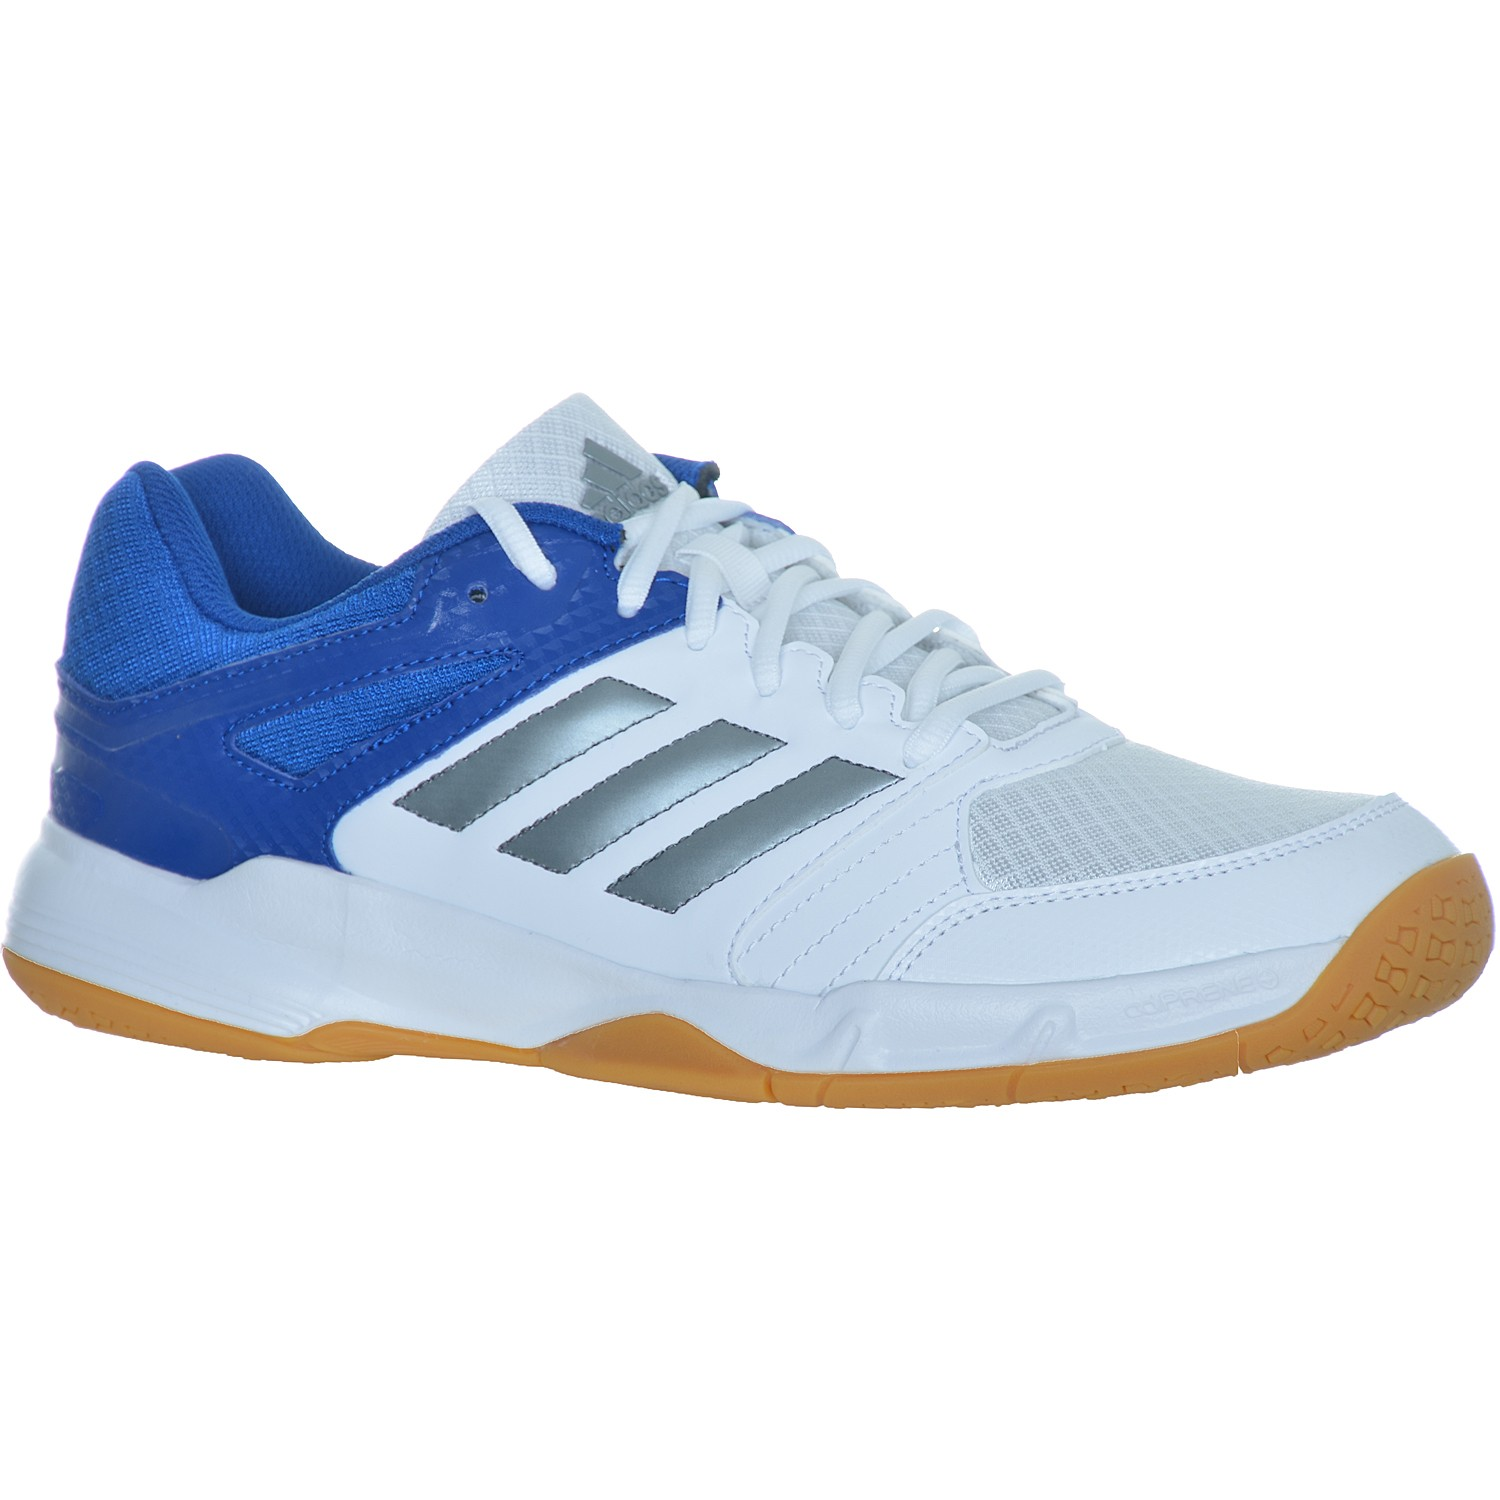 adidas perfomance speedcourt men herren hallenschuhe weiss blau ebay. Black Bedroom Furniture Sets. Home Design Ideas